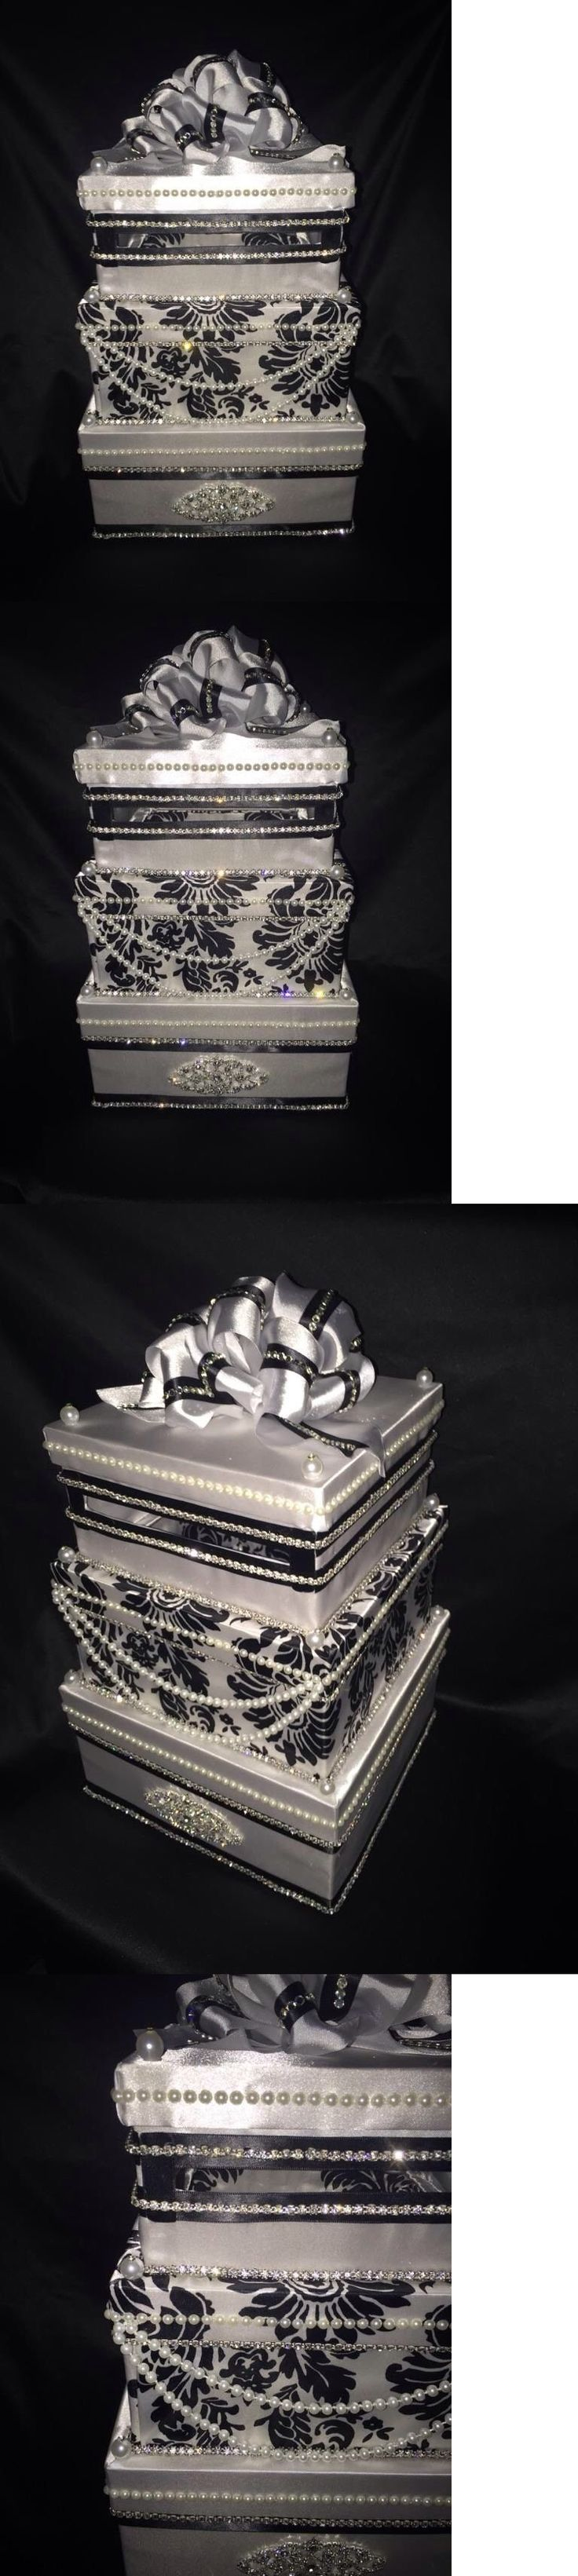 Card Boxes and Wishing Wells 168189: Wedding Money Box Card Box Money Gift Box Wedding Box Black And White -> BUY IT NOW ONLY: $159 on eBay!